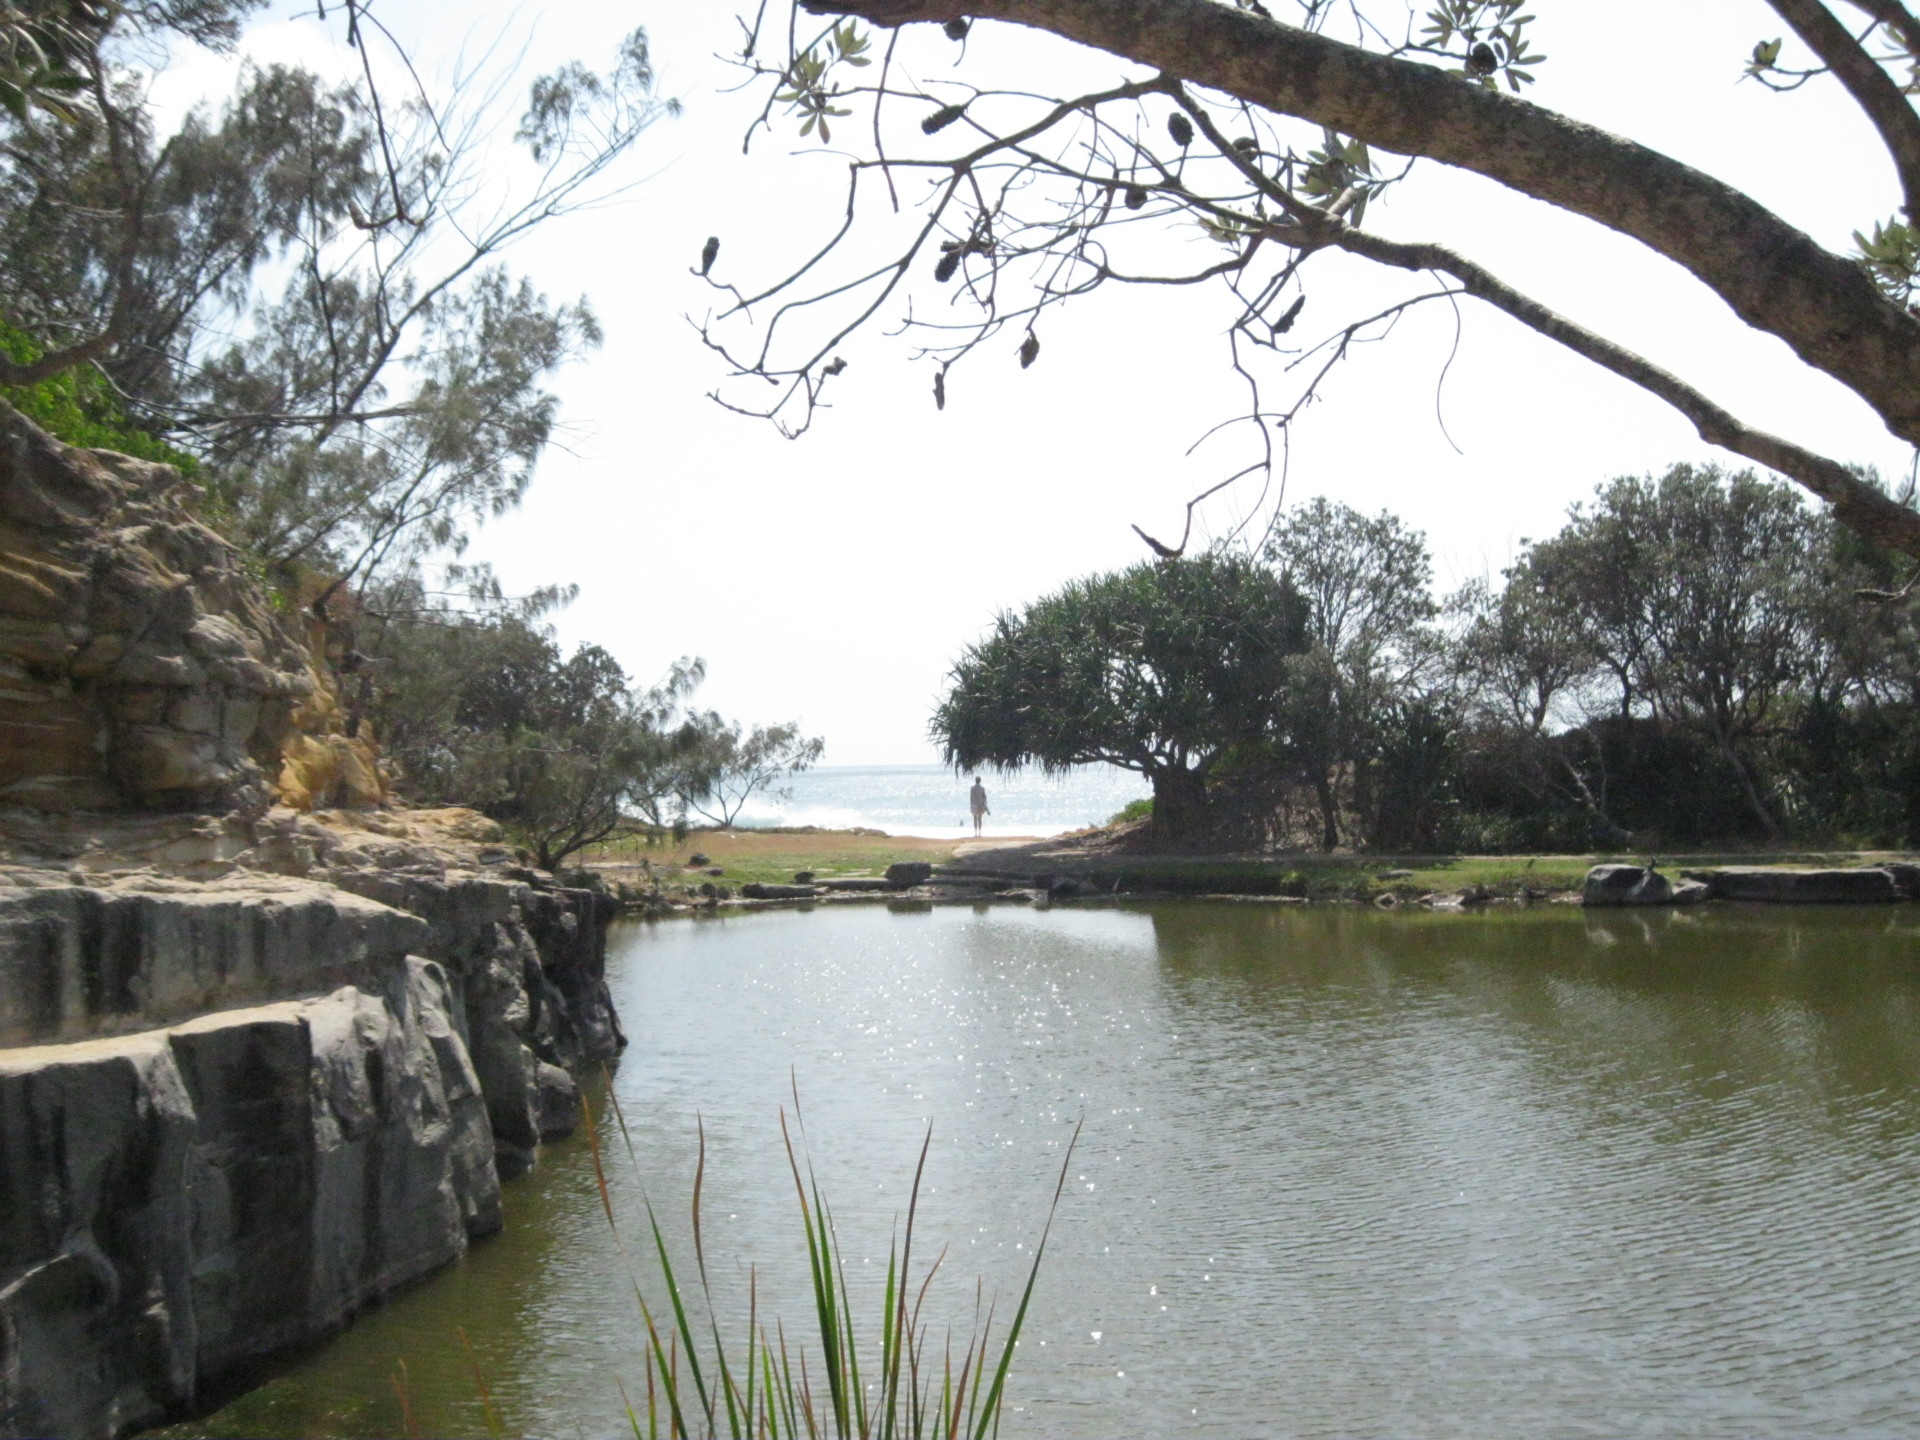 This is the Green Pool at Angourie, next to Yamba, nothernNSW.